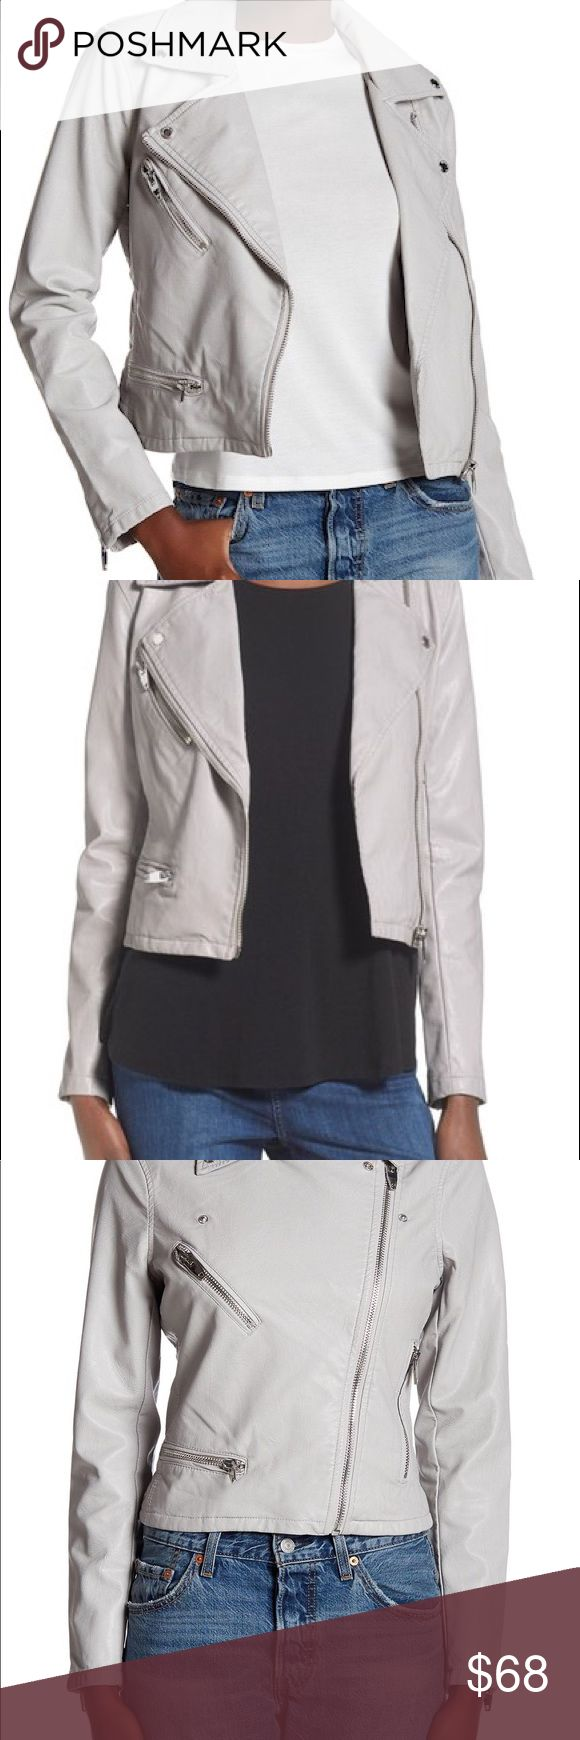 """Blank NYC grey faux leather moto jacket Mint condition, satin lined, very comfortable and beautiful color goes with everything ! Chunky silver accents. Color is """"Stonehenge"""" Blank NYC Jackets & Coats"""